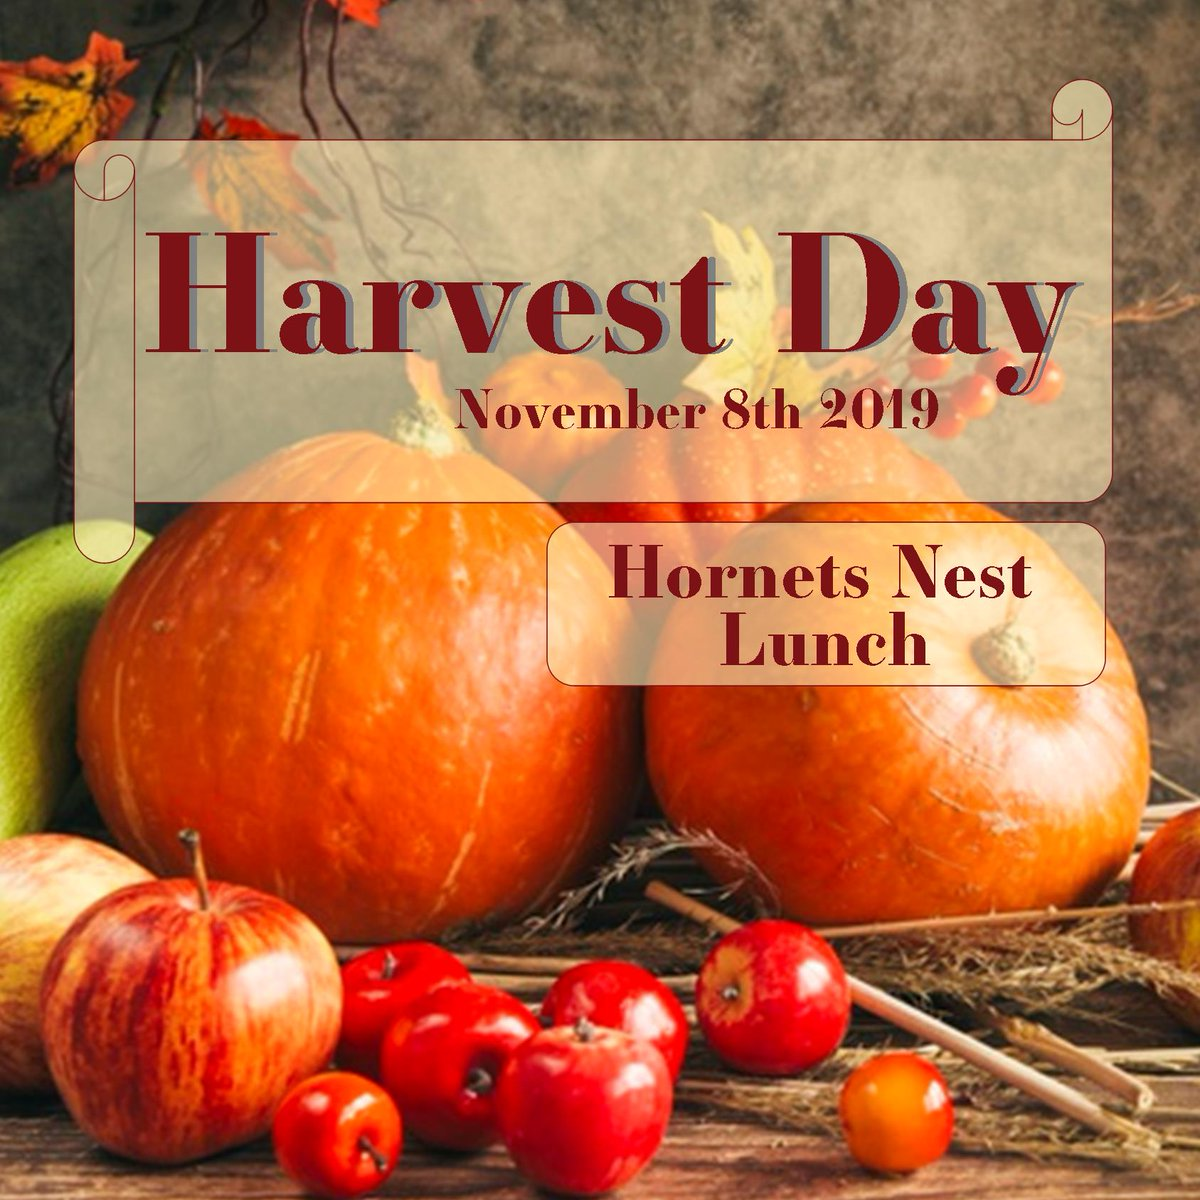 Join us in the Nest today for Harvest Day! Enjoy delicious pies, hot chocolate and hot apple cider.   @esuUNION  #esunest #harvestday #applecider #pie #yumyum